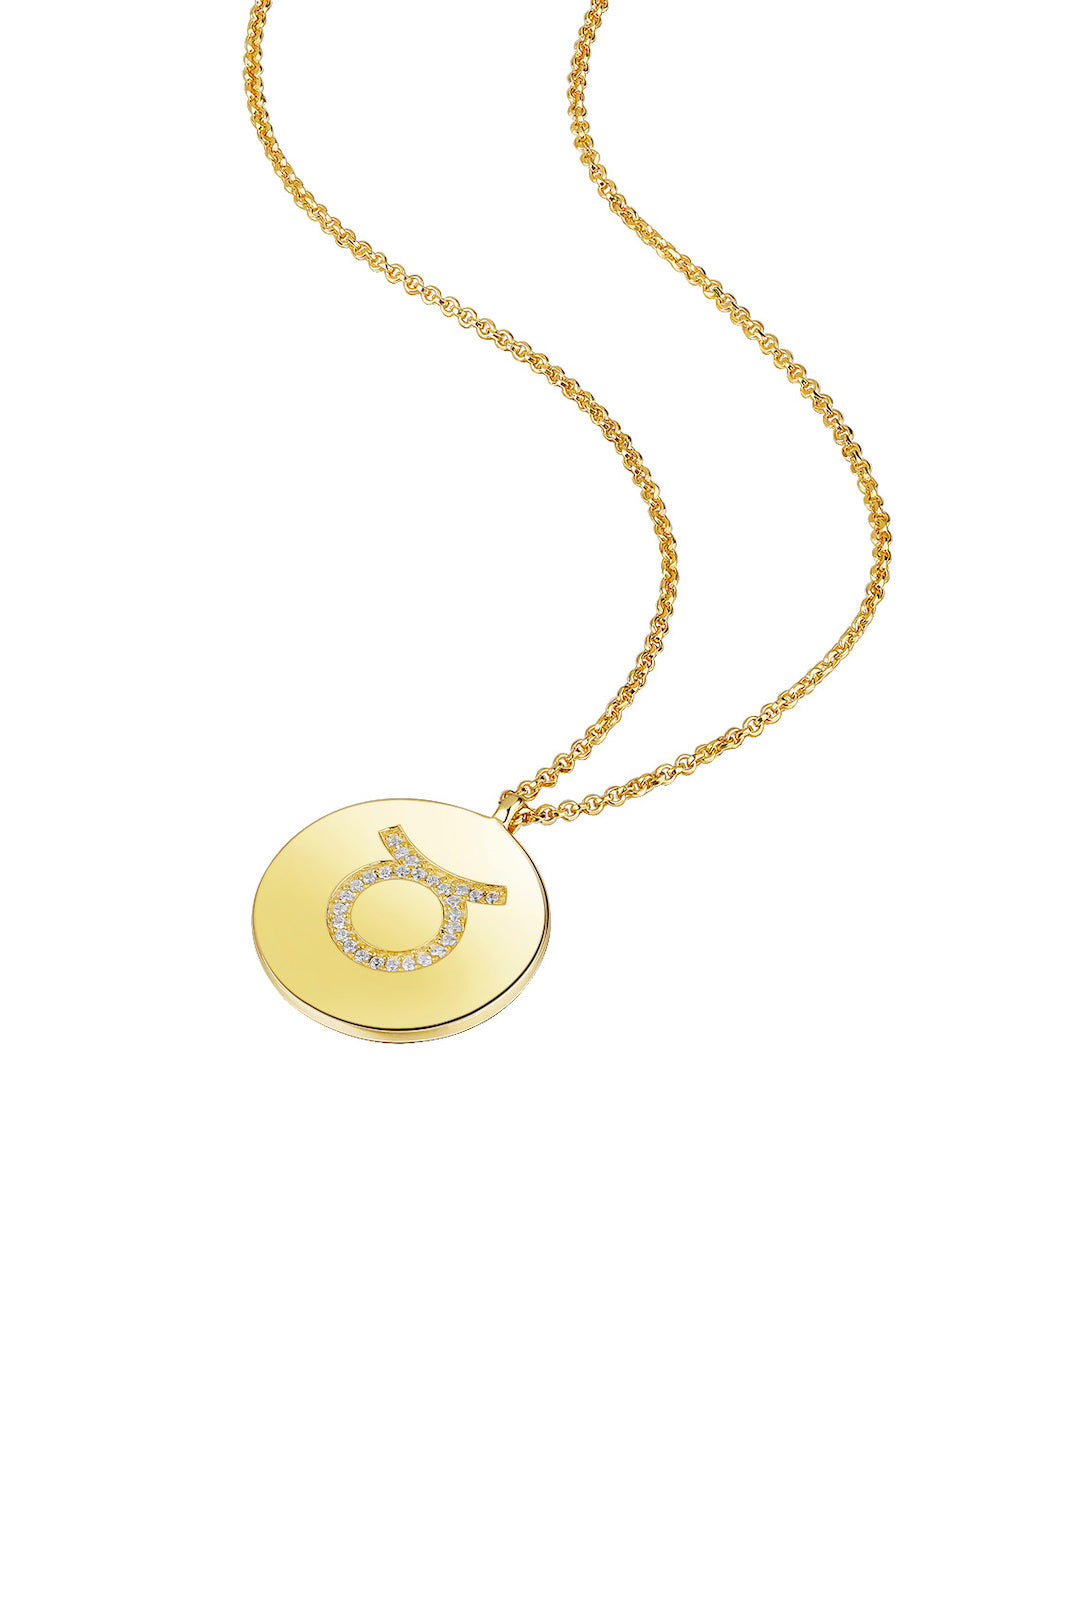 Gold Plated Silver Zodiac Necklace - Taurus Side View